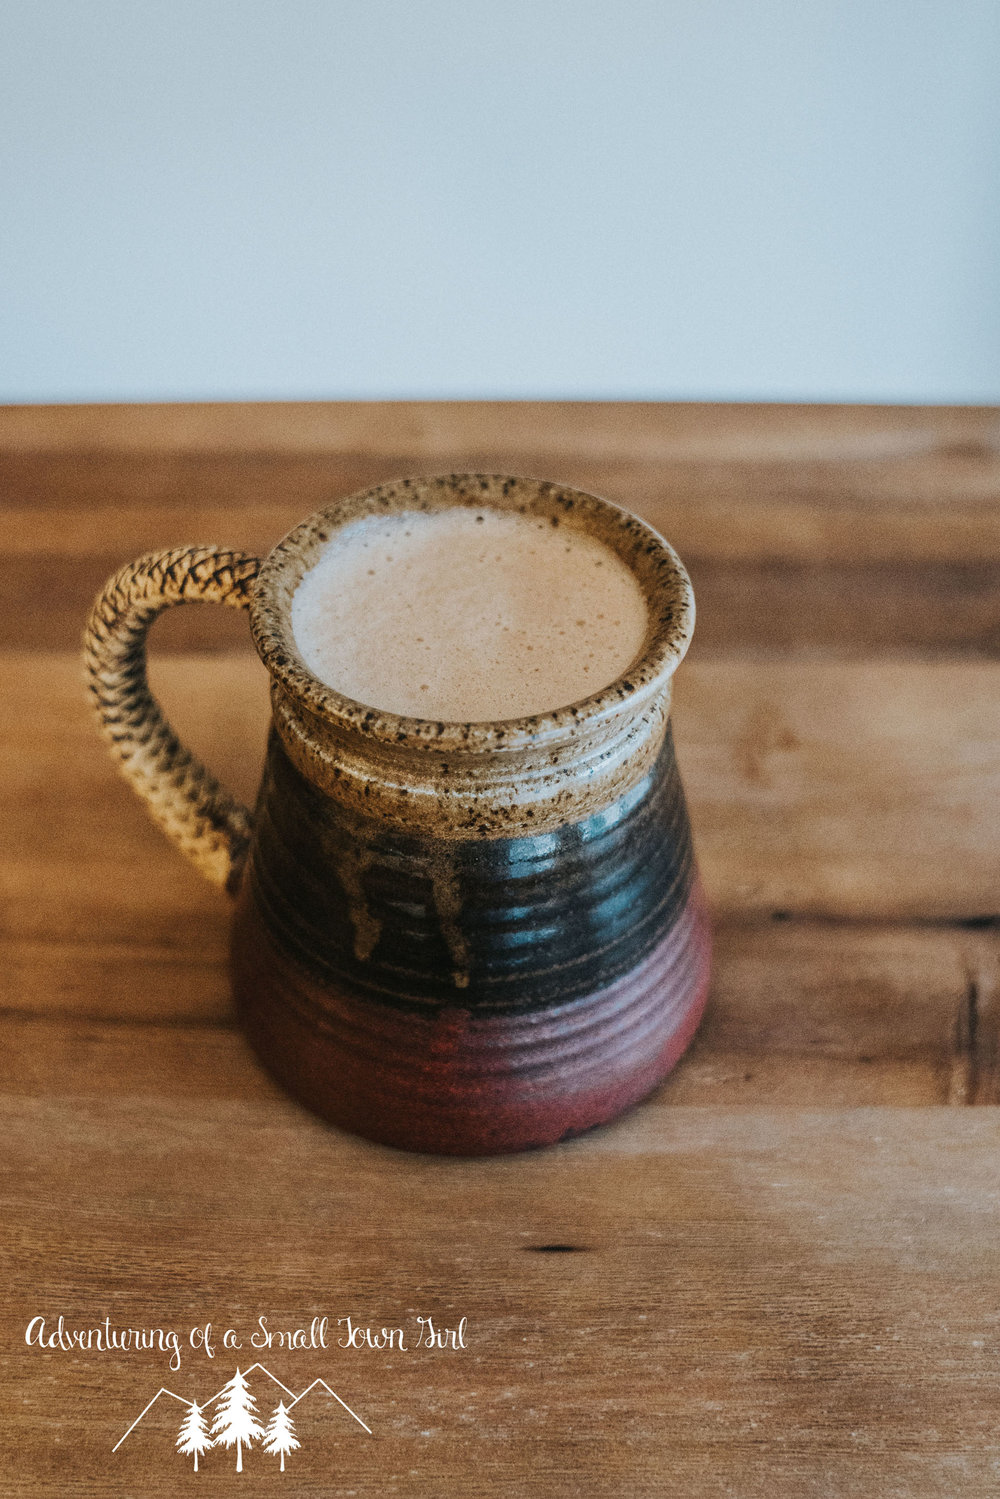 Healthy Latte Recipe - Starbucks Hack - Adventuring of a Small Town Girl.jpg